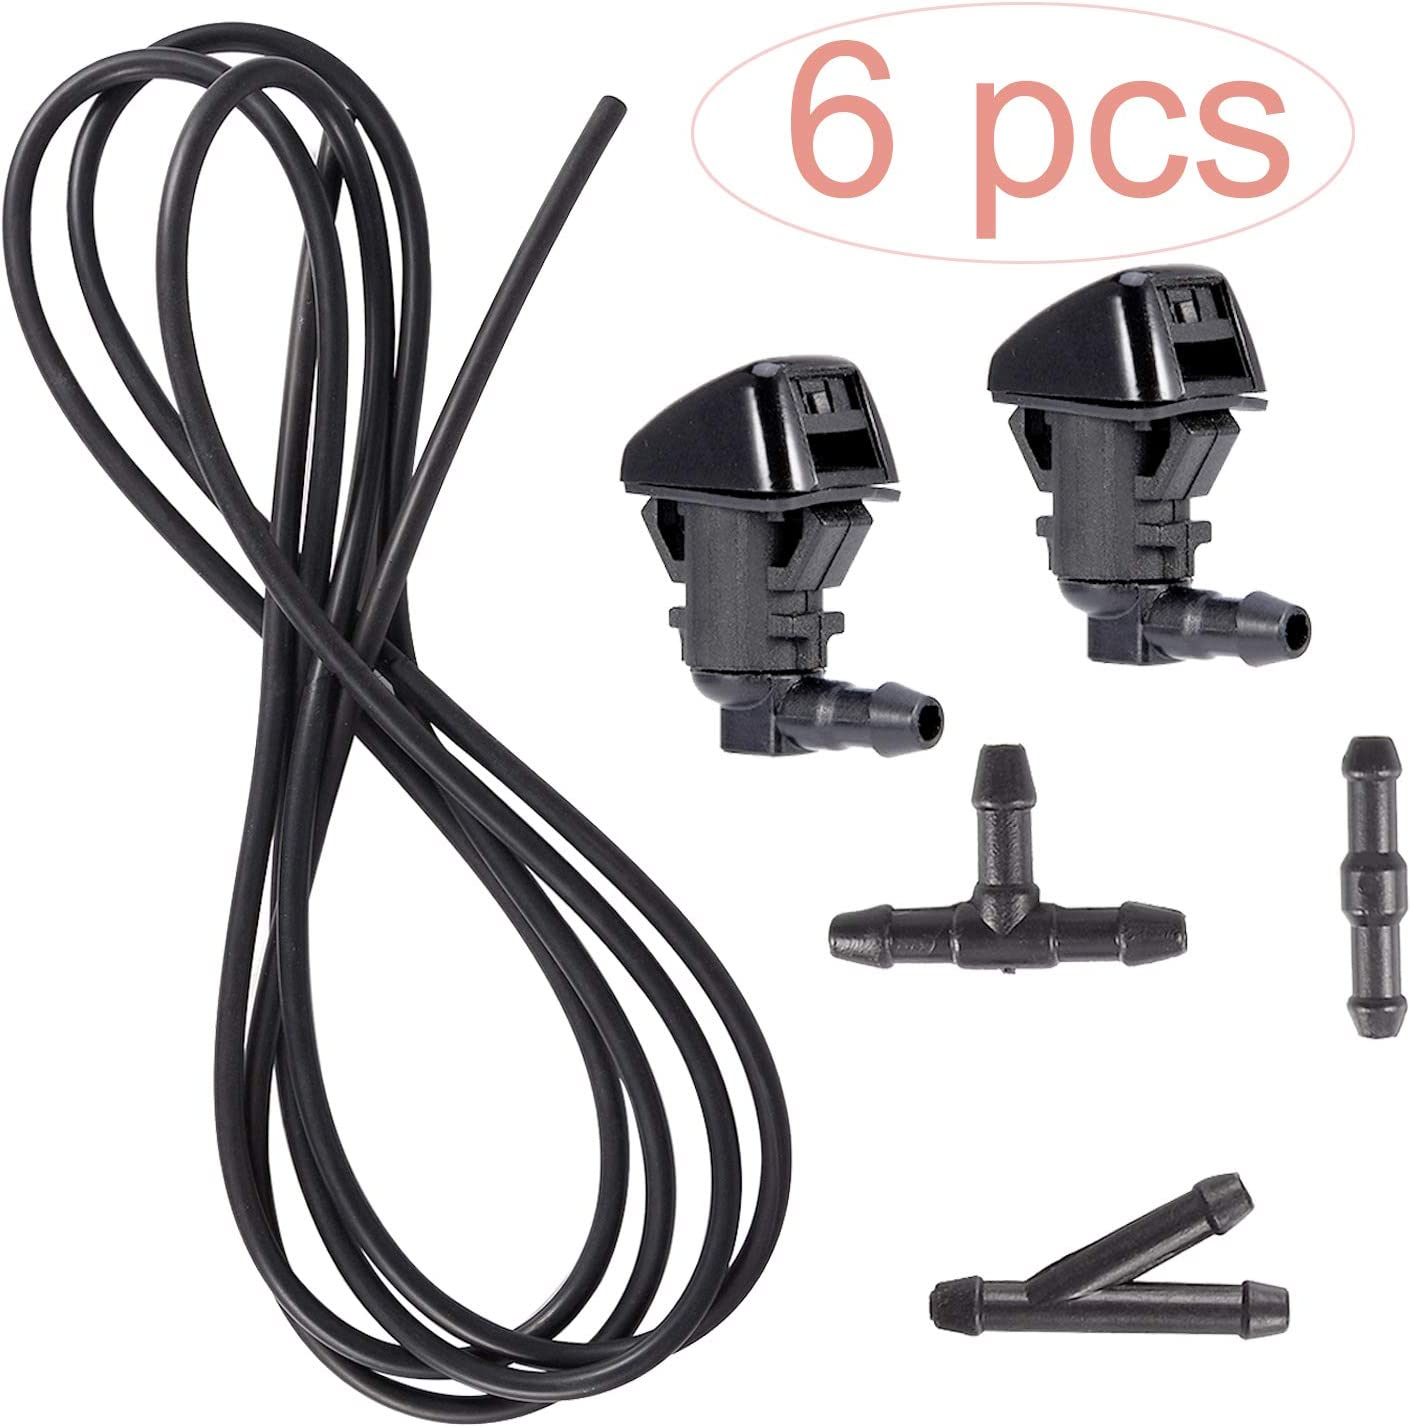 BingSnow 6 Pcs Windshield Washer Nozzles Kit-Windshield Washer Squirter Nozzle Spray and 3 Meters Fluid Hose with 3 Pcs Connectors for 2011-2015 Ford F250 F350 F450 F550, Replace OEM # BC3Z17603A